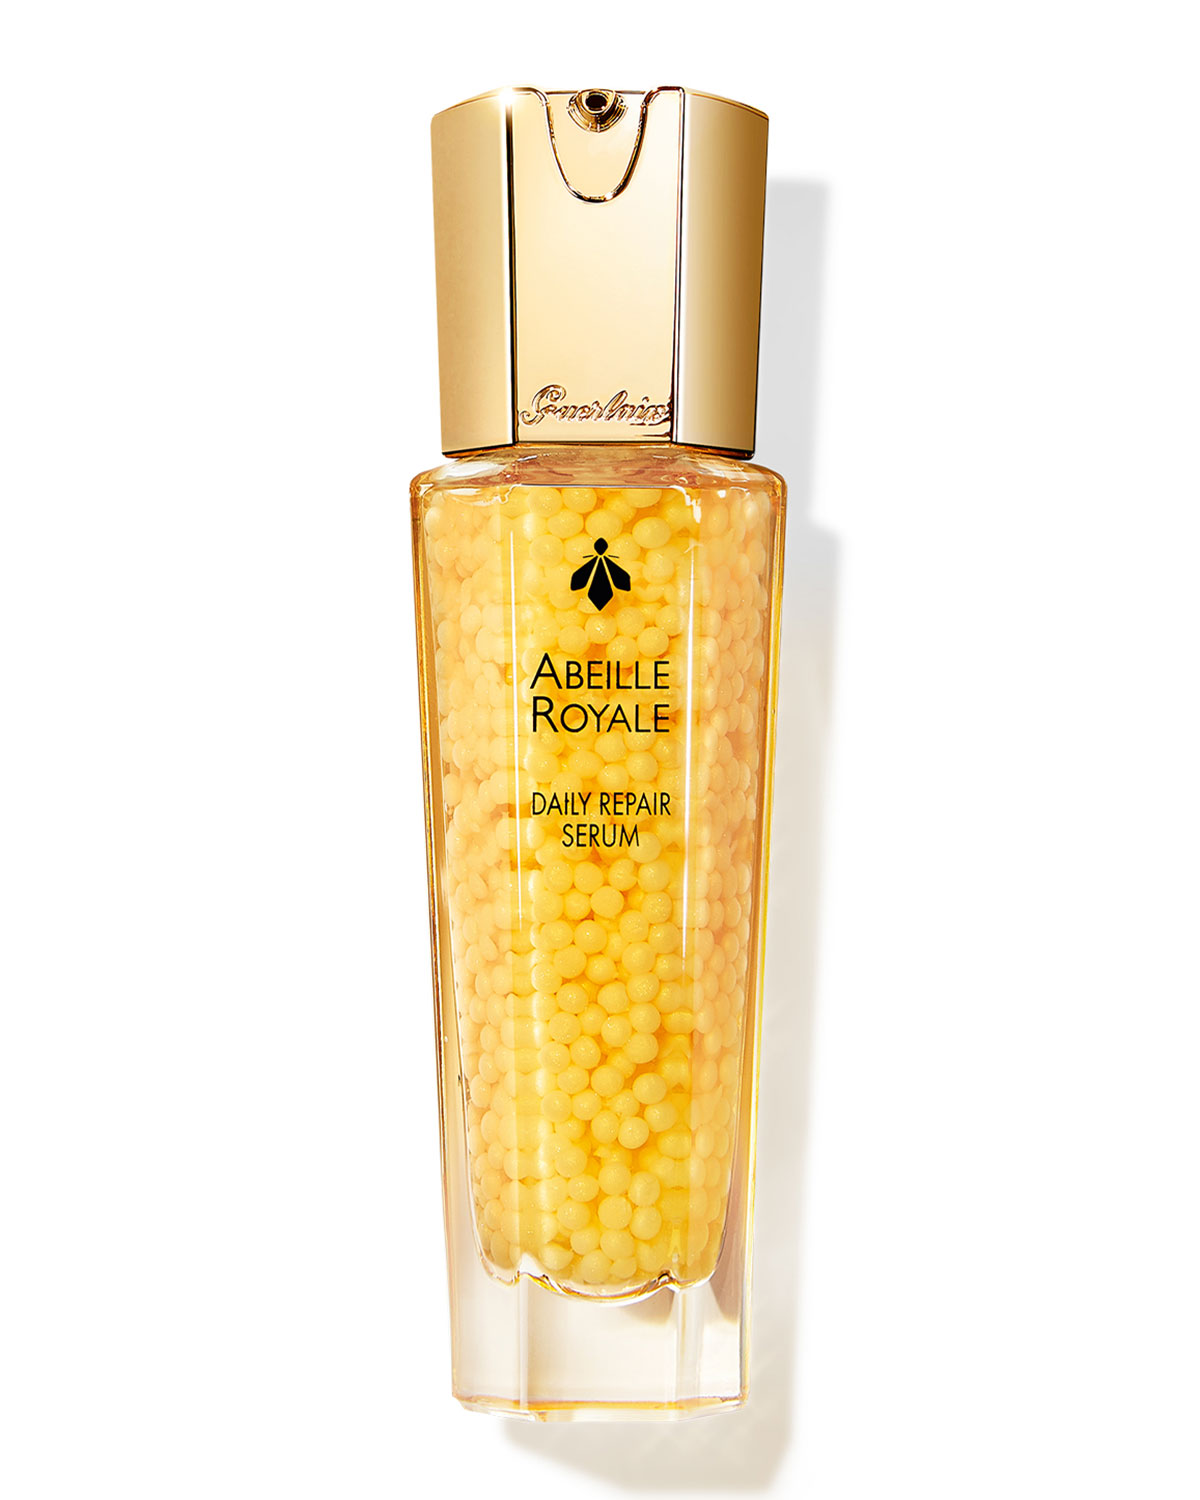 Guerlain 1.7 oz. Abeille Royale Daily Repair Serum